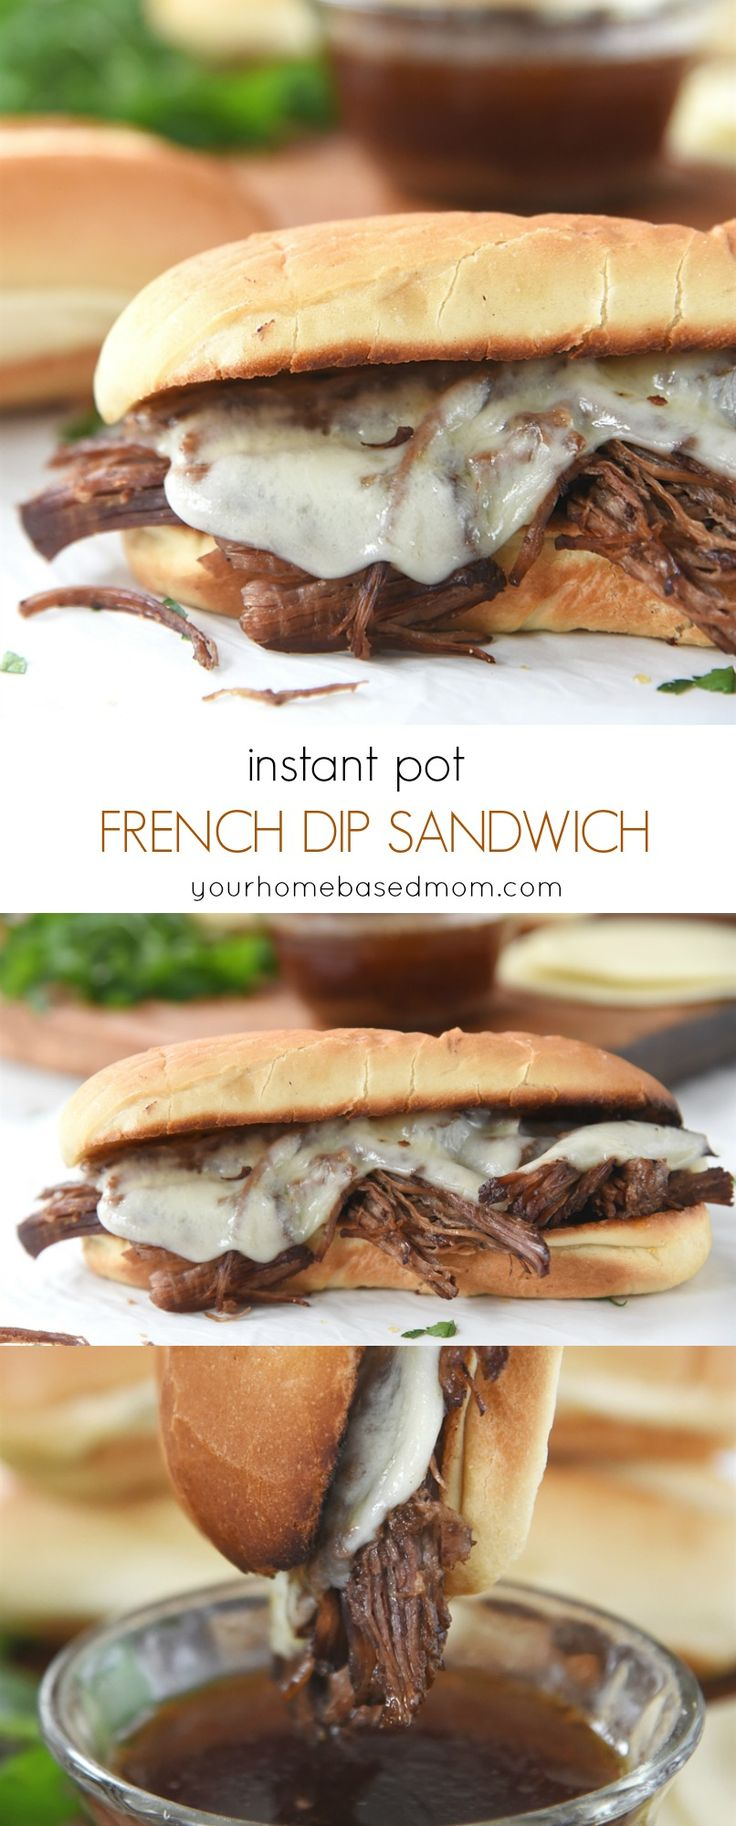 Instant Pot French Dip Sandwiches - perfect way to put together a quick and easy dinner that's delicious!